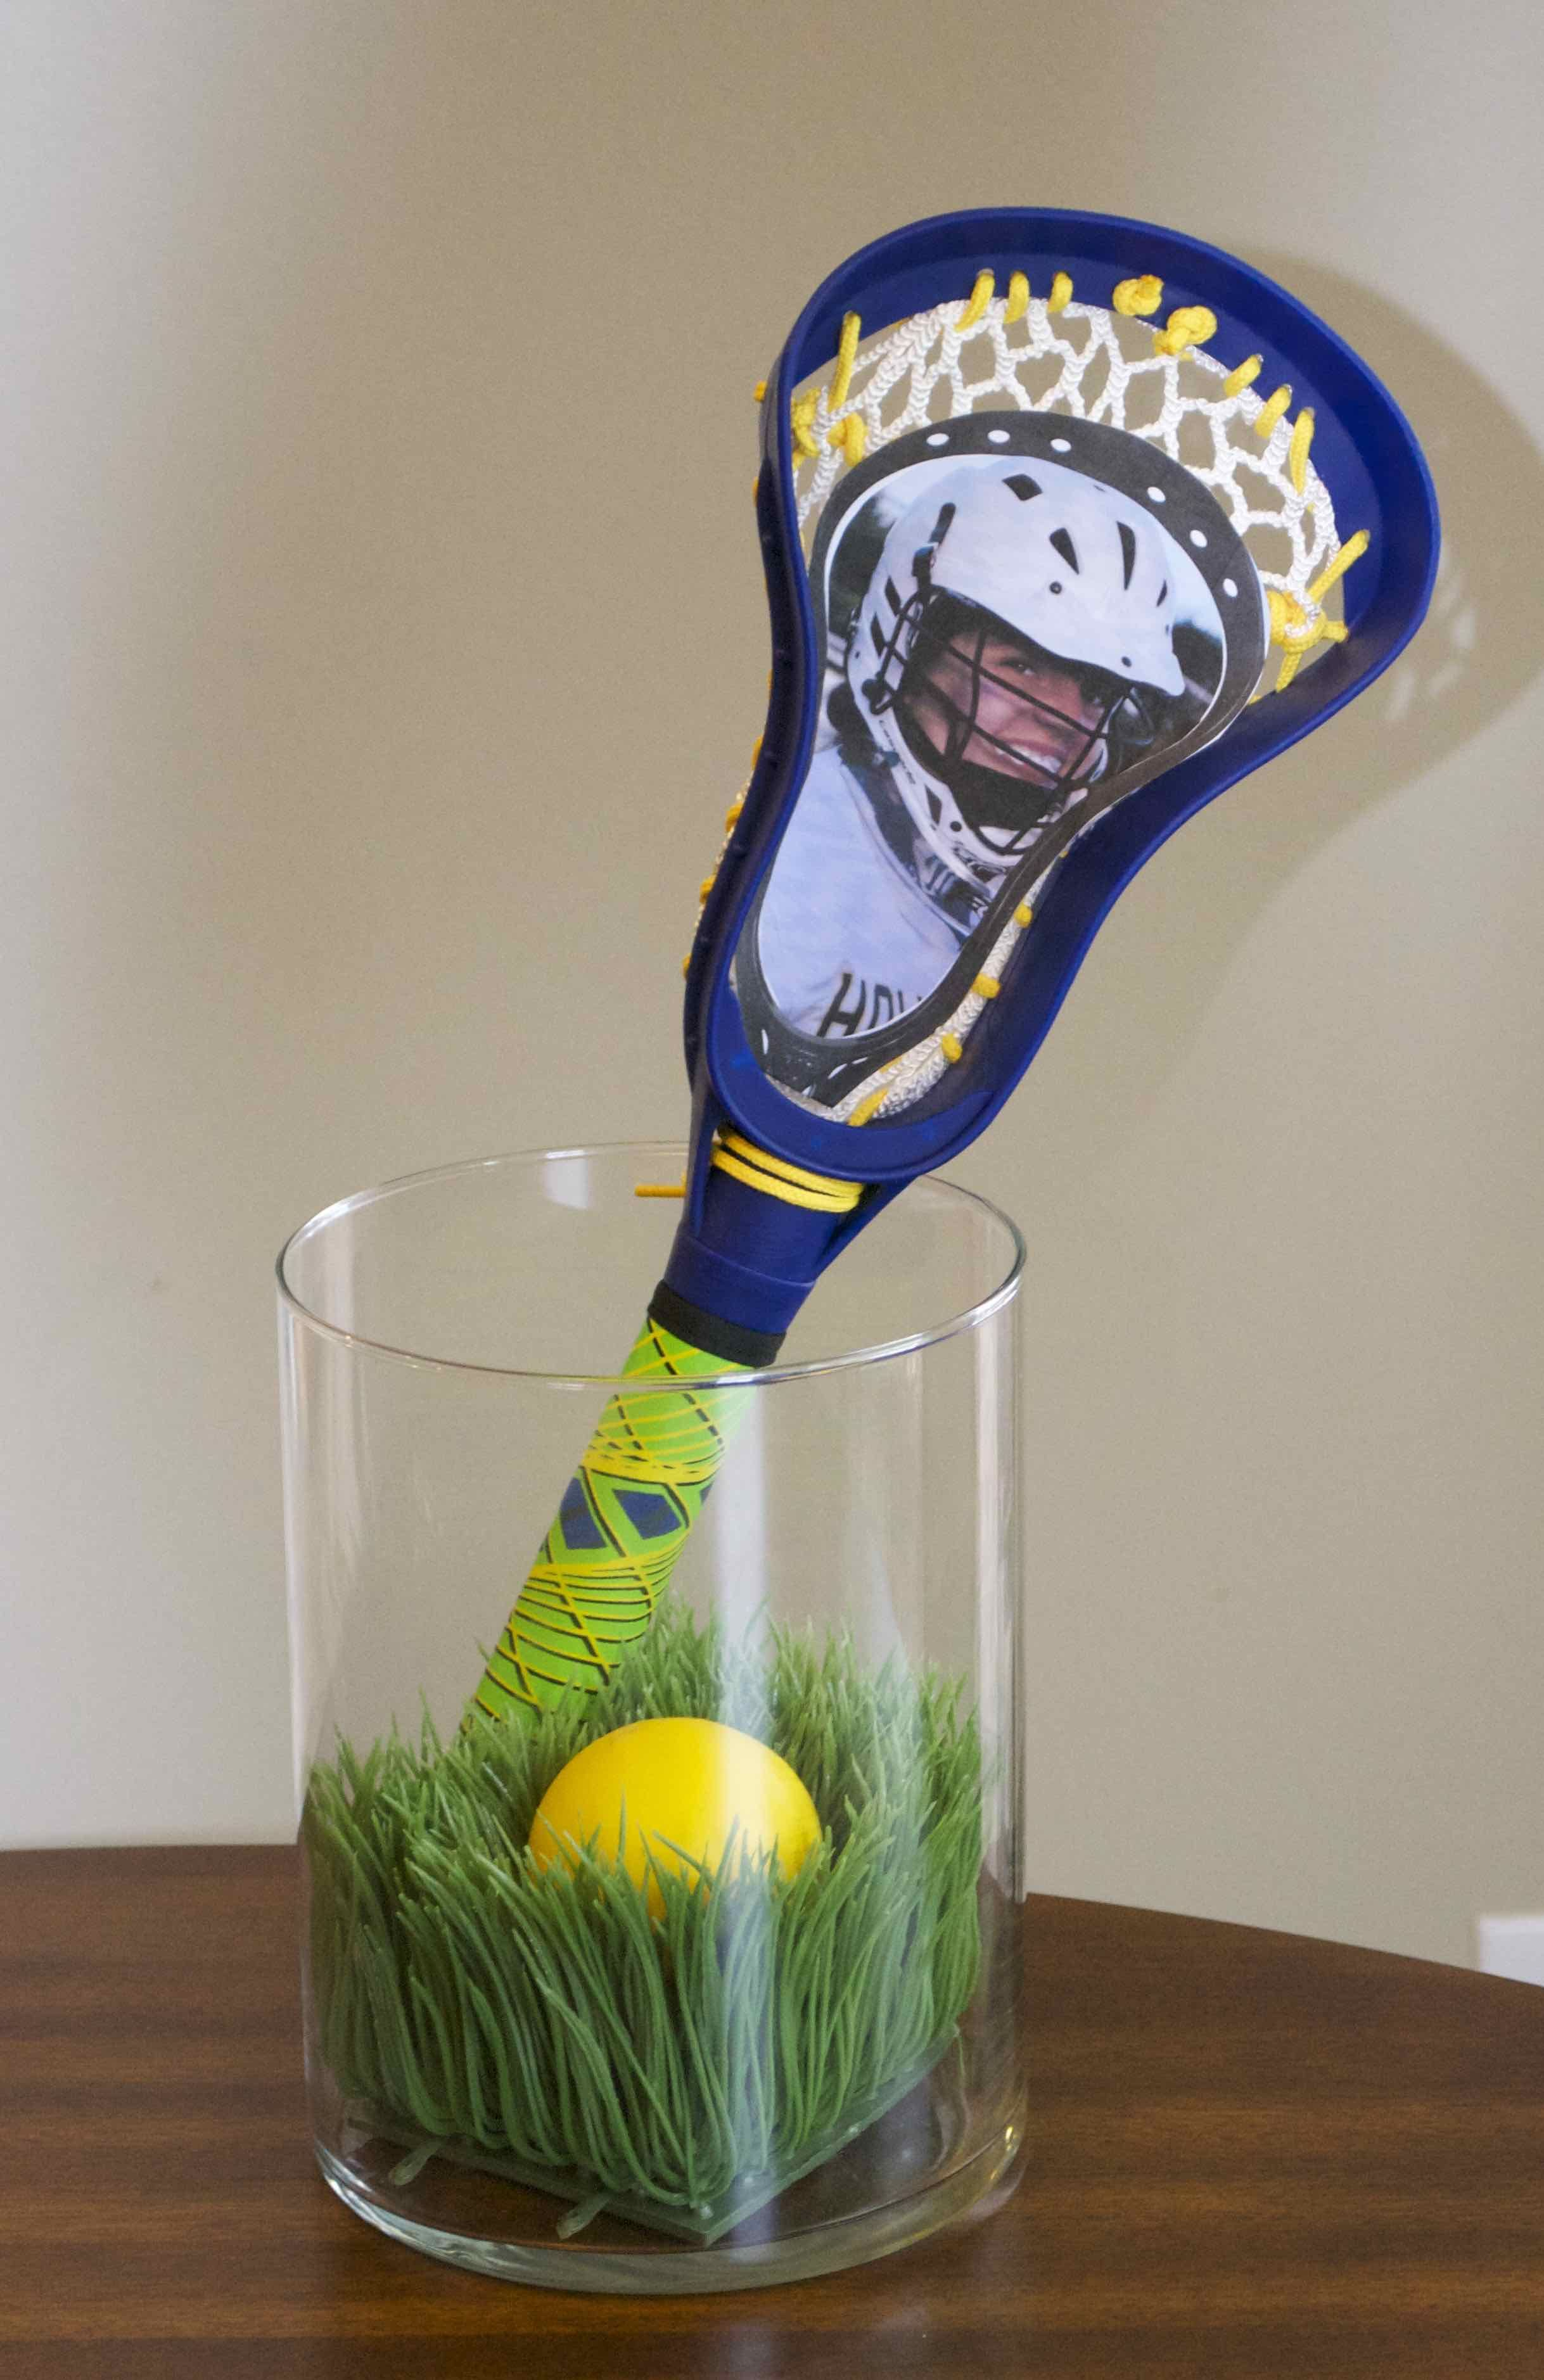 Lax Banquet Centerpiece, Artifical Grass, Lacrosse Ball, Pool Lacrosse Stick,